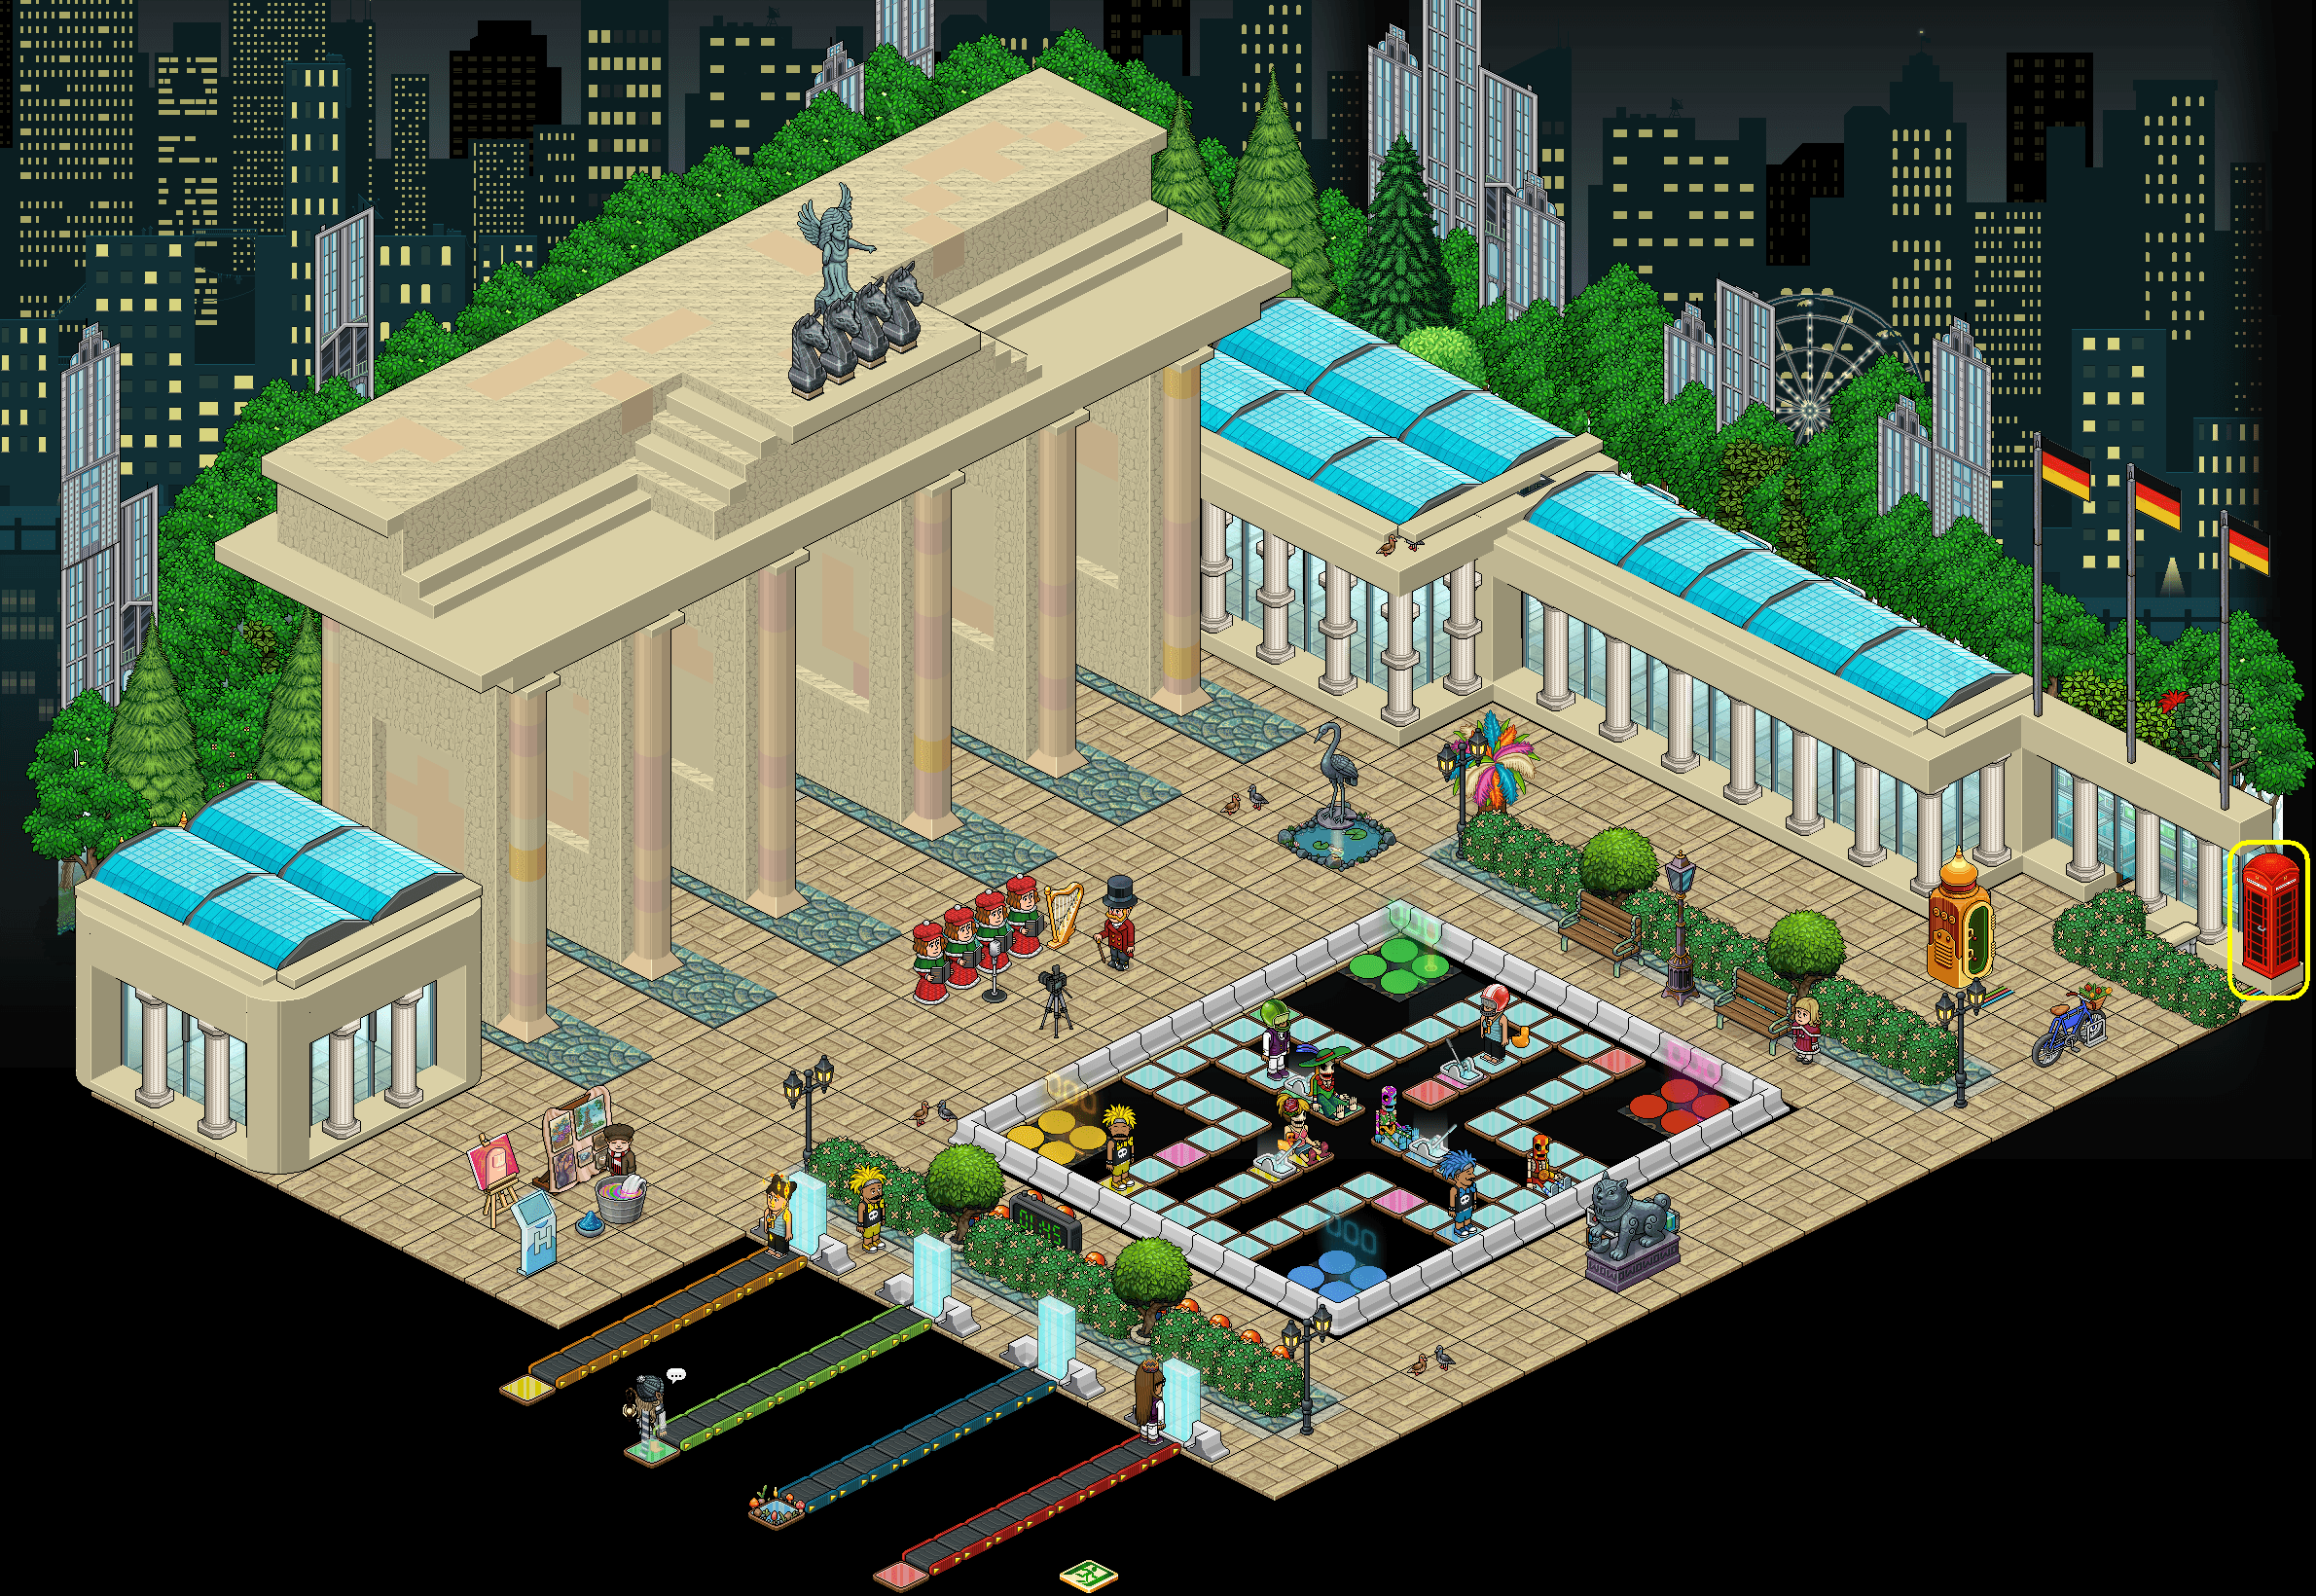 Habbo Tour - Direction l'Europe ! - Berlin